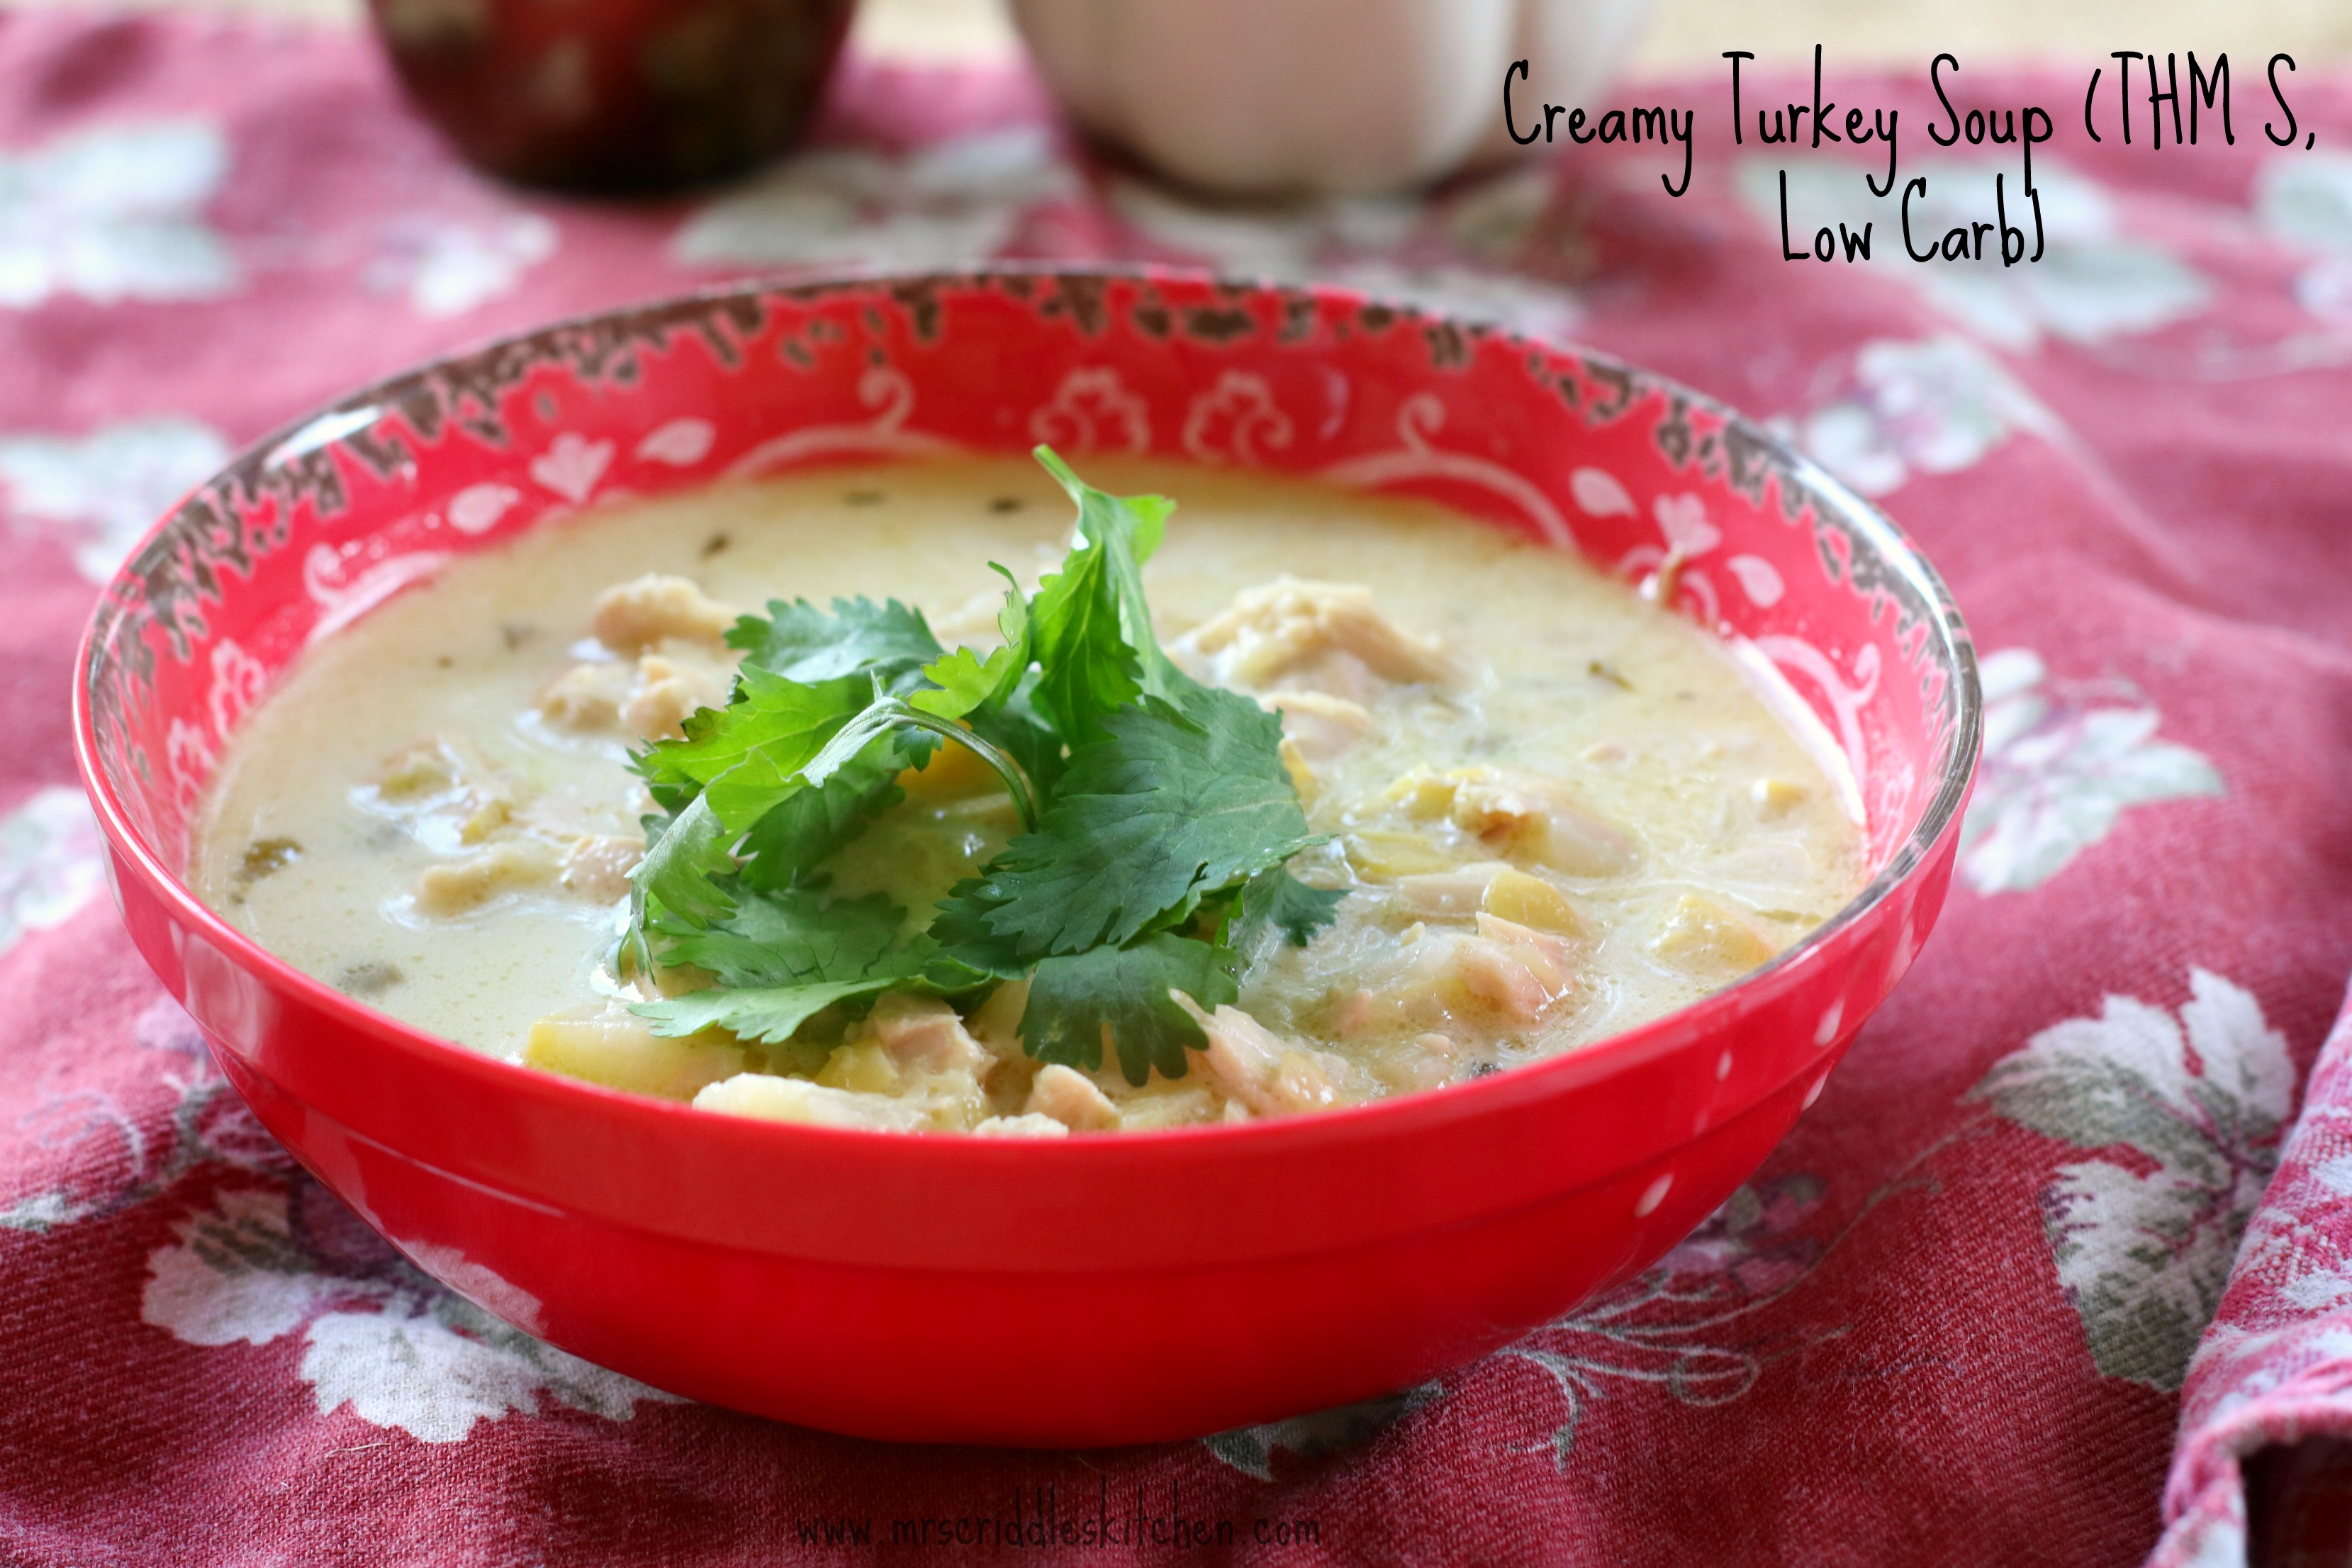 Creamy Turkey Soup - Mrs. Criddles Kitchen